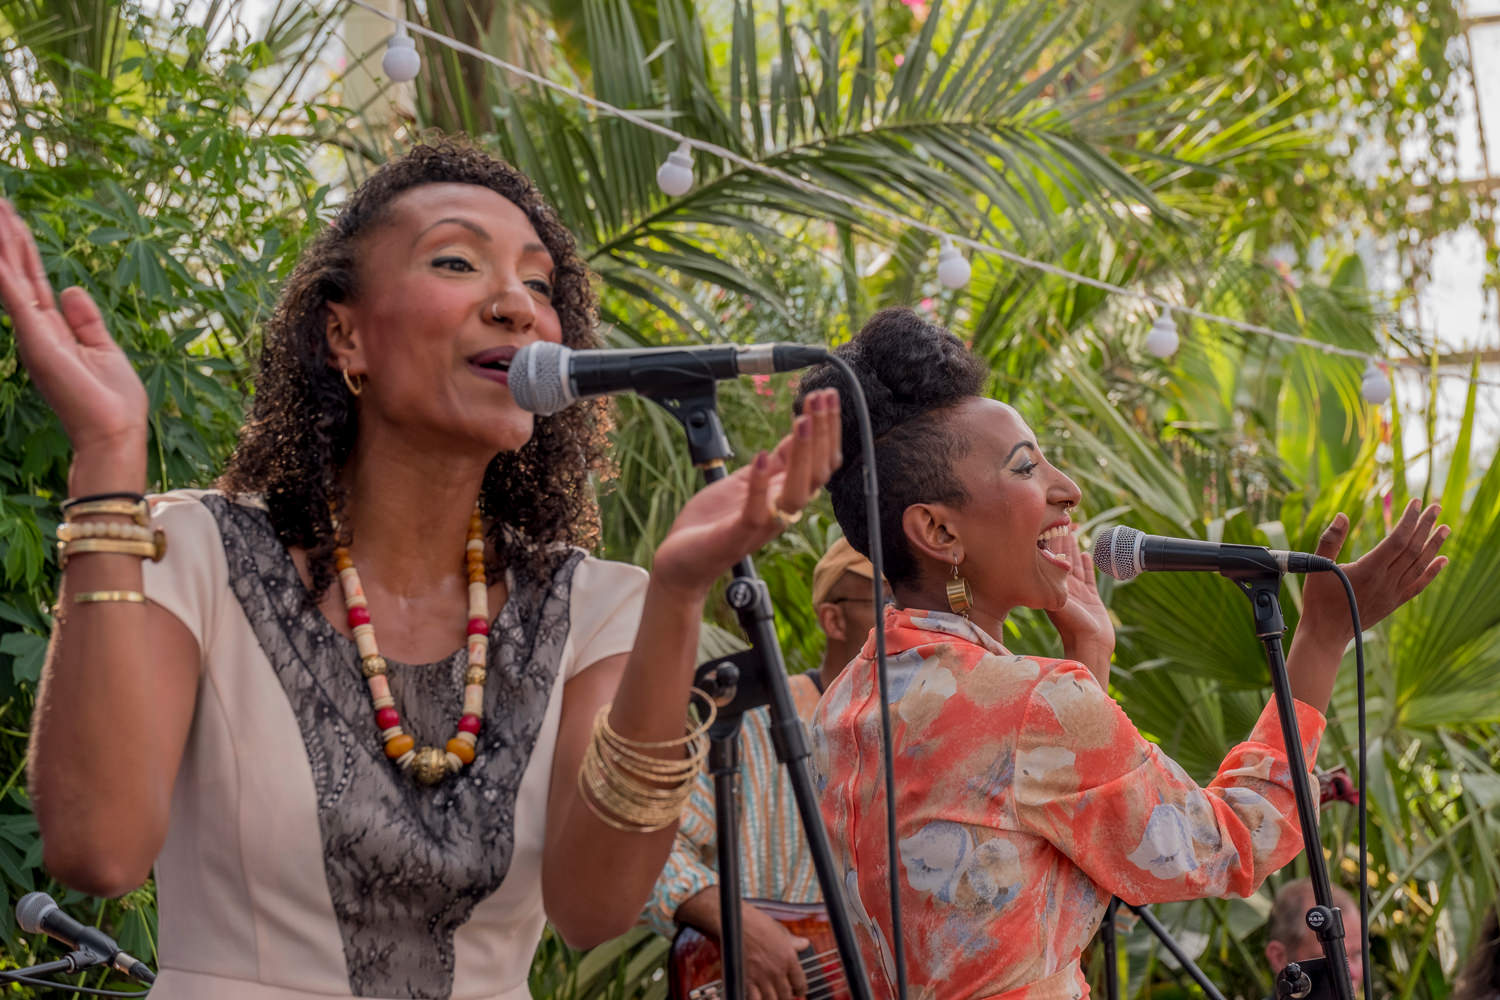 Two women standing next to each other, singing. They're clapping their hands and smiling as they sing.